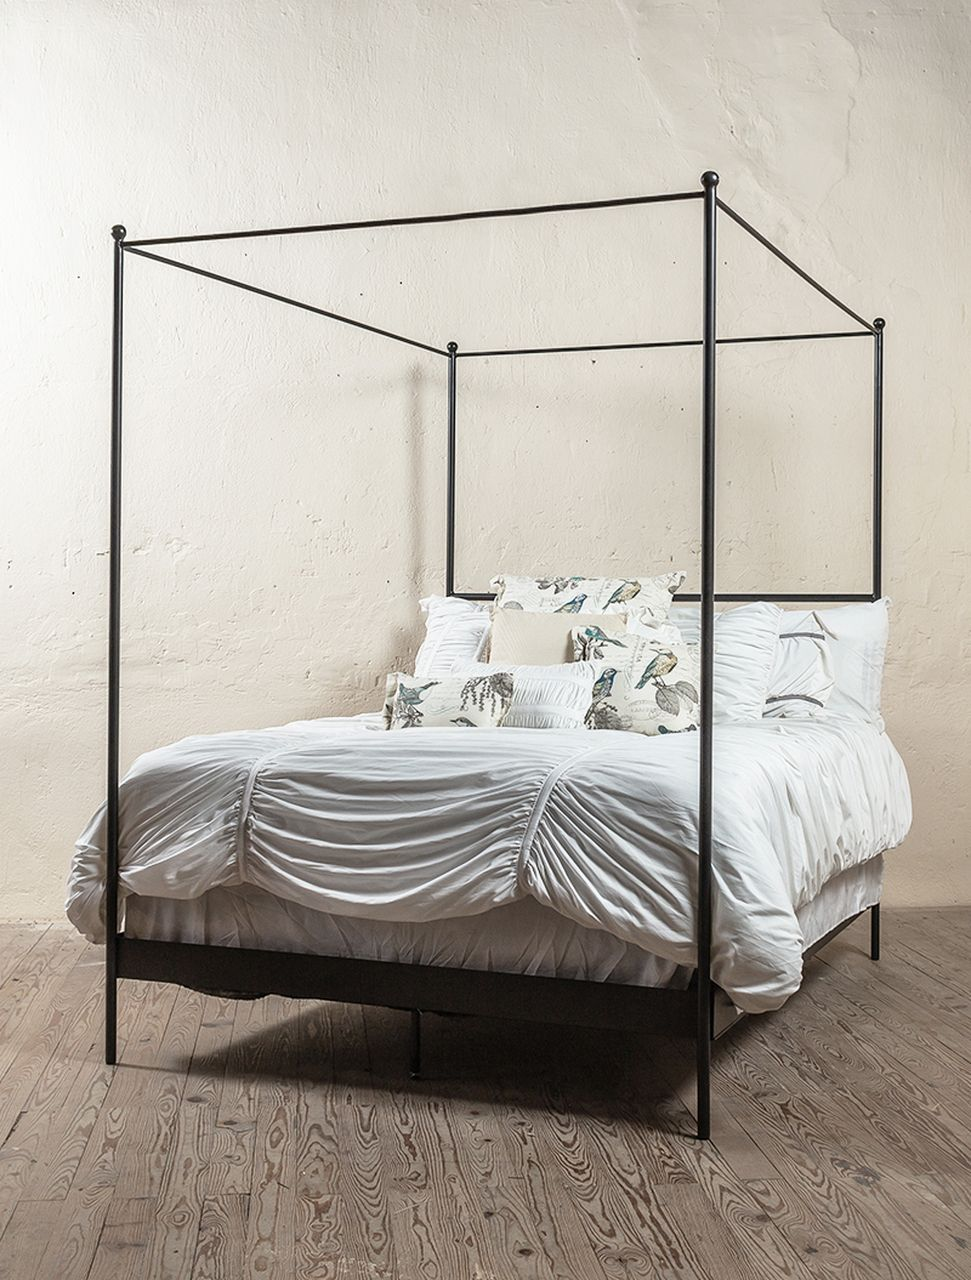 Corinth Iron Canopy Bed In 2020 Iron Canopy Bed Iron Bed Wrought Iron Beds